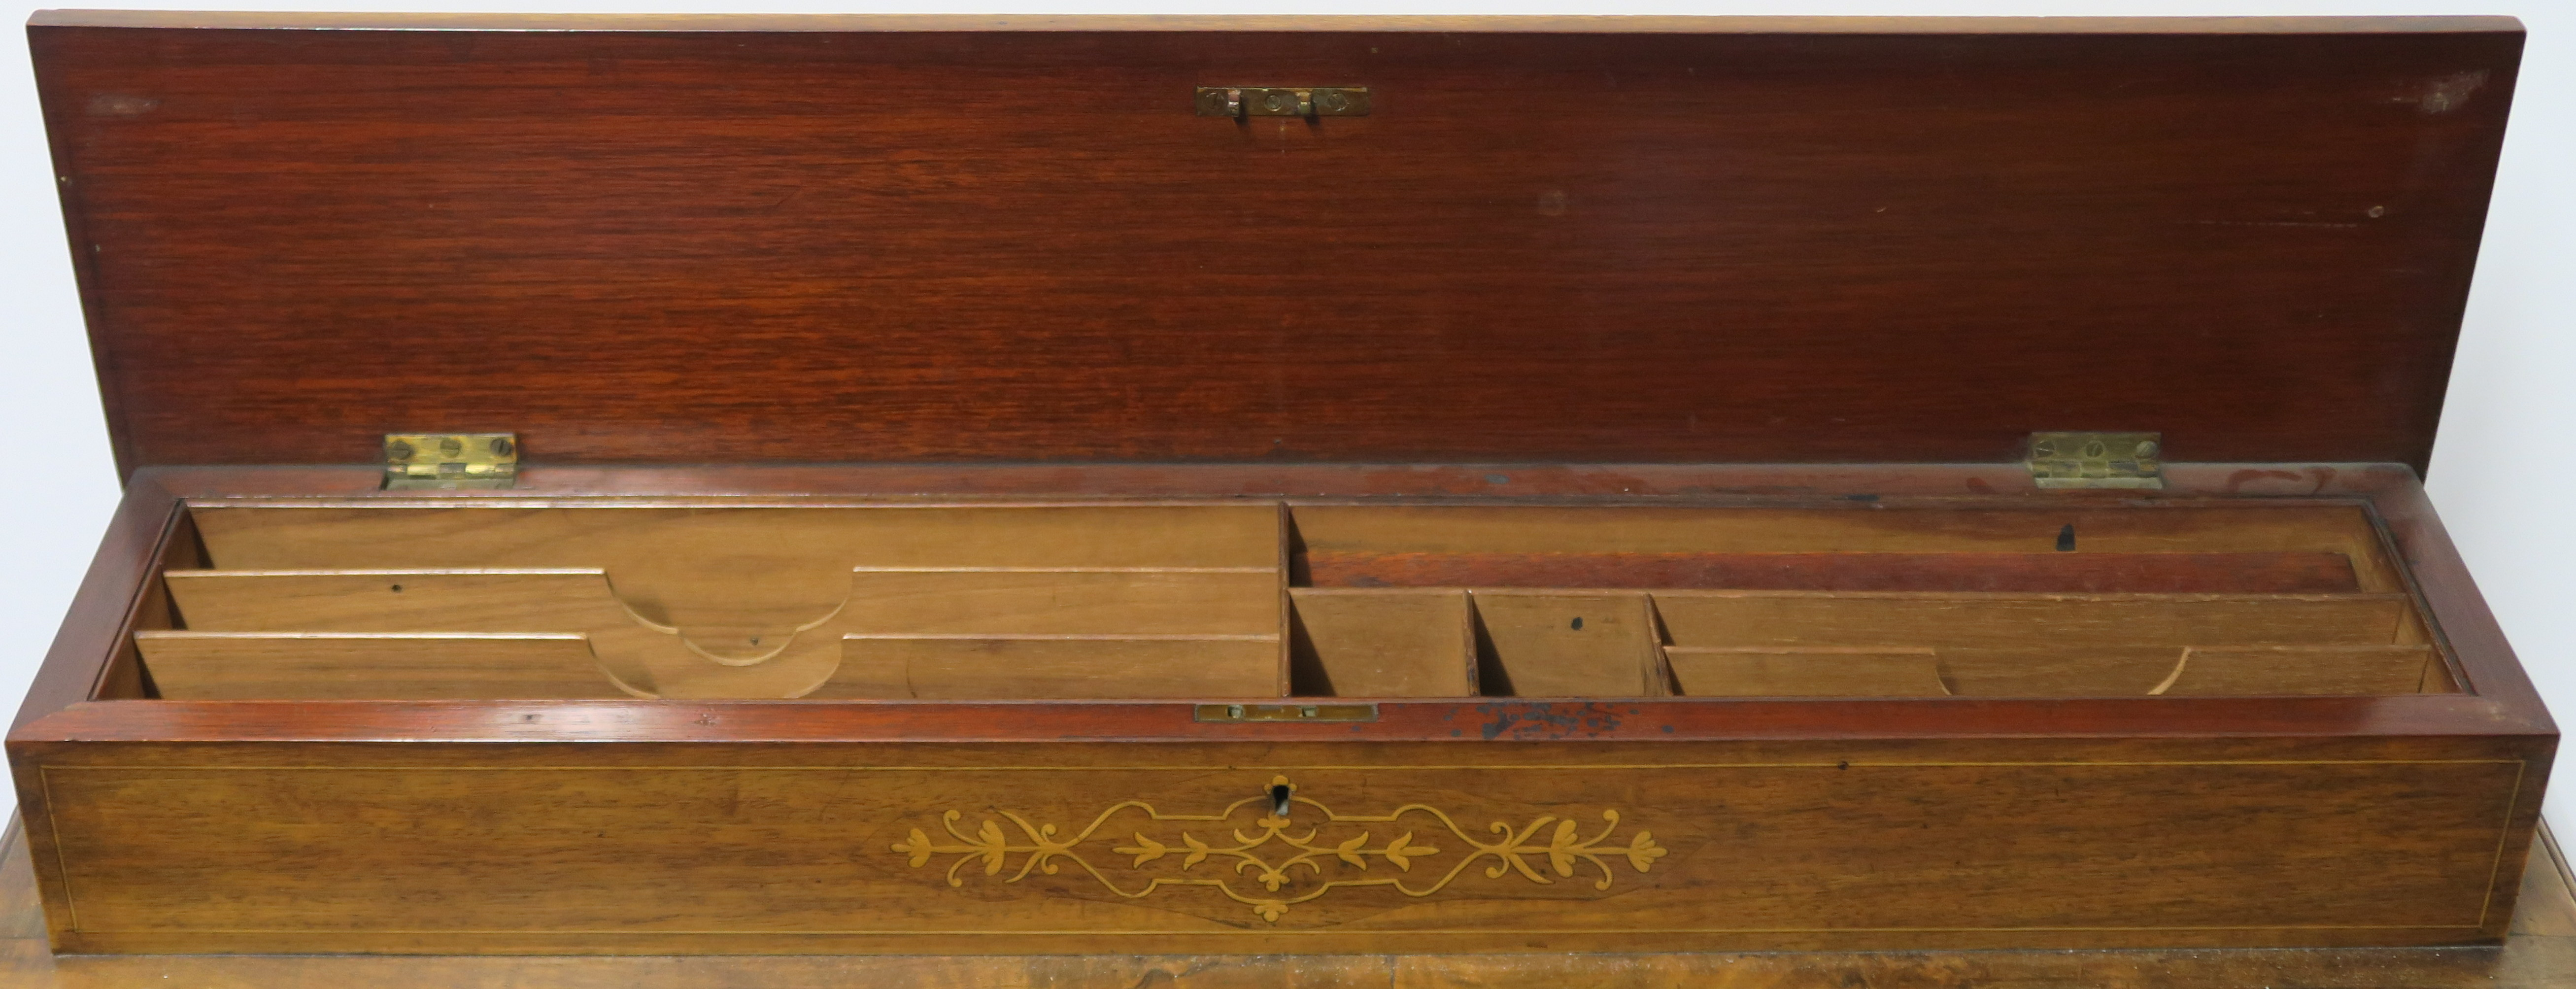 A VICTORIAN INLAID WALNUT DAVENPORT of standard design with four drawers 95cm high, 75cm wide and - Image 3 of 9